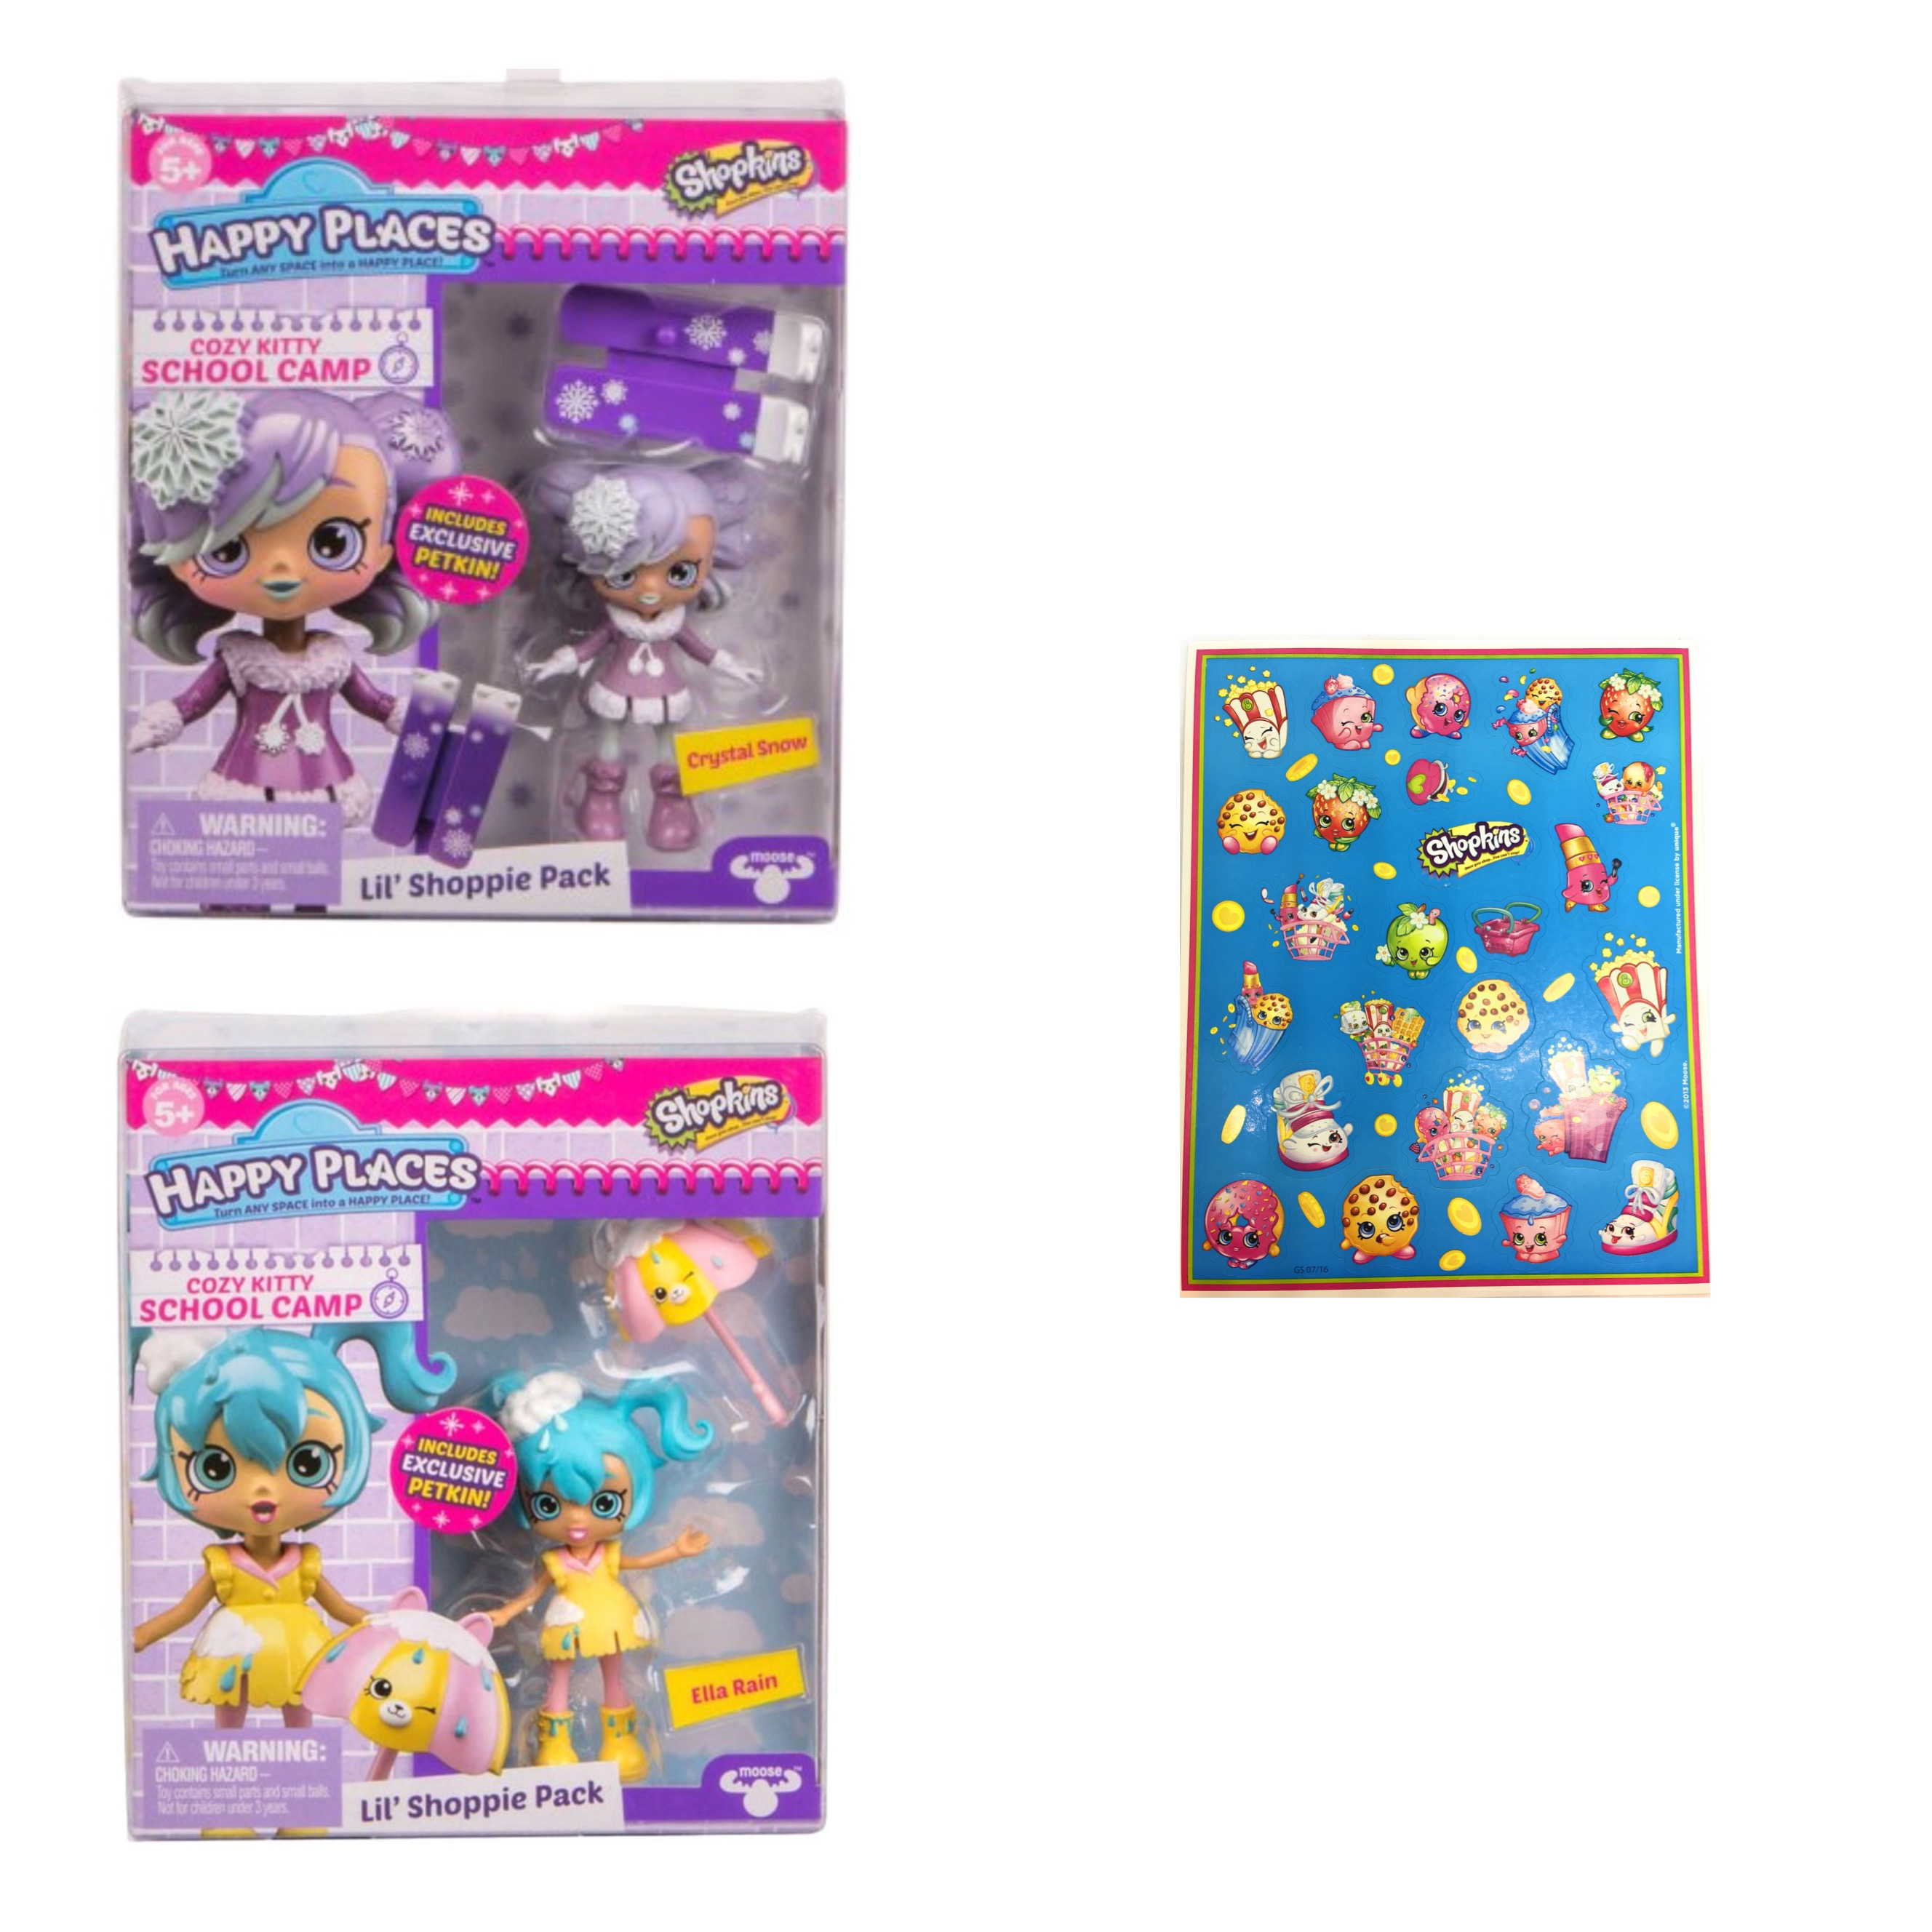 Shopkins Happy Places Cozy Kitty School Camp Lil' Shoppie Pack Crystal Snow and Ella Rain Pack with Bonus Sickers